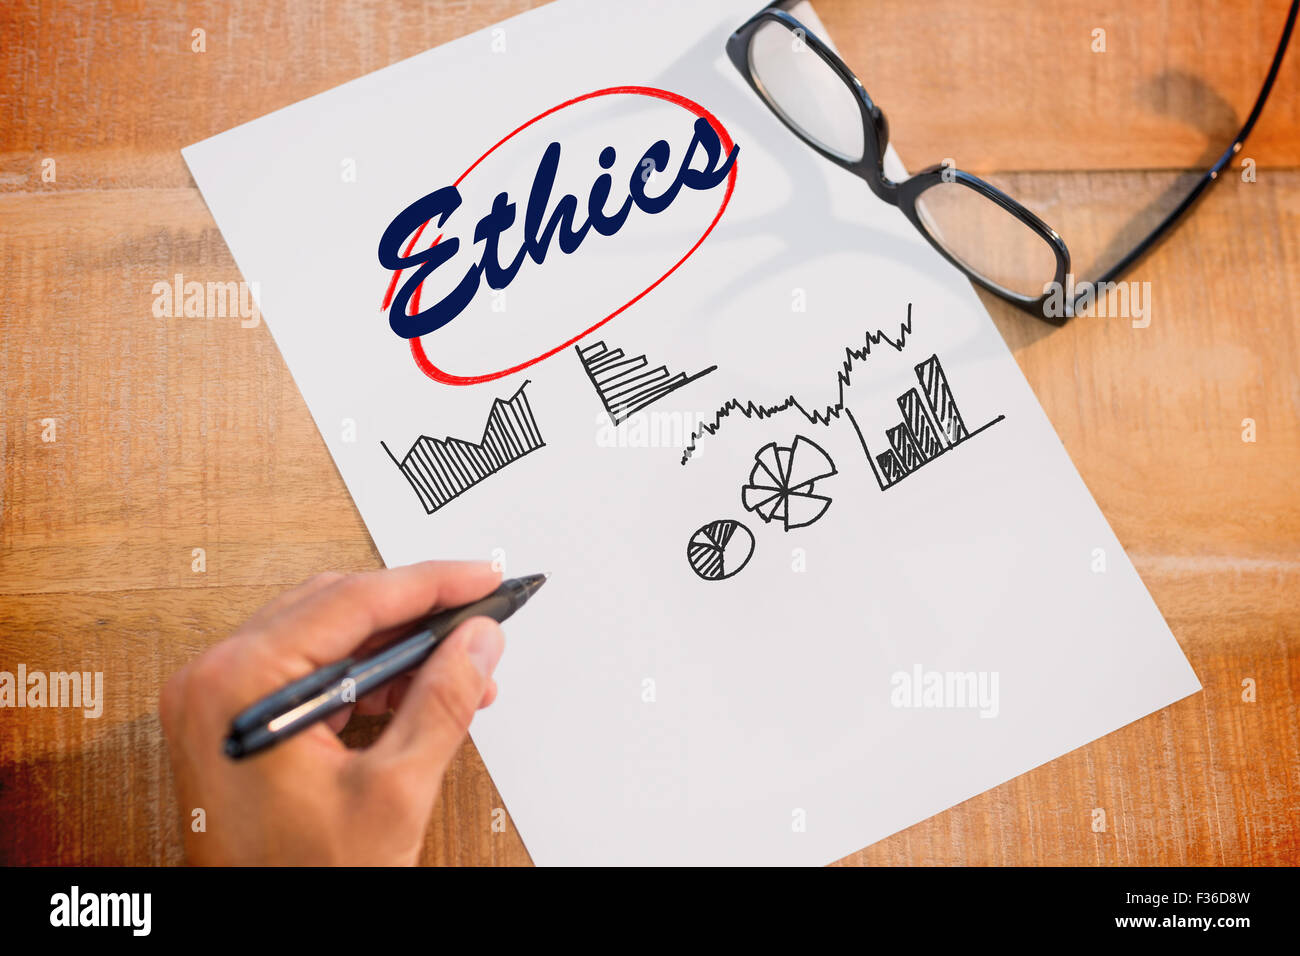 Ethics against business graphs - Stock Image